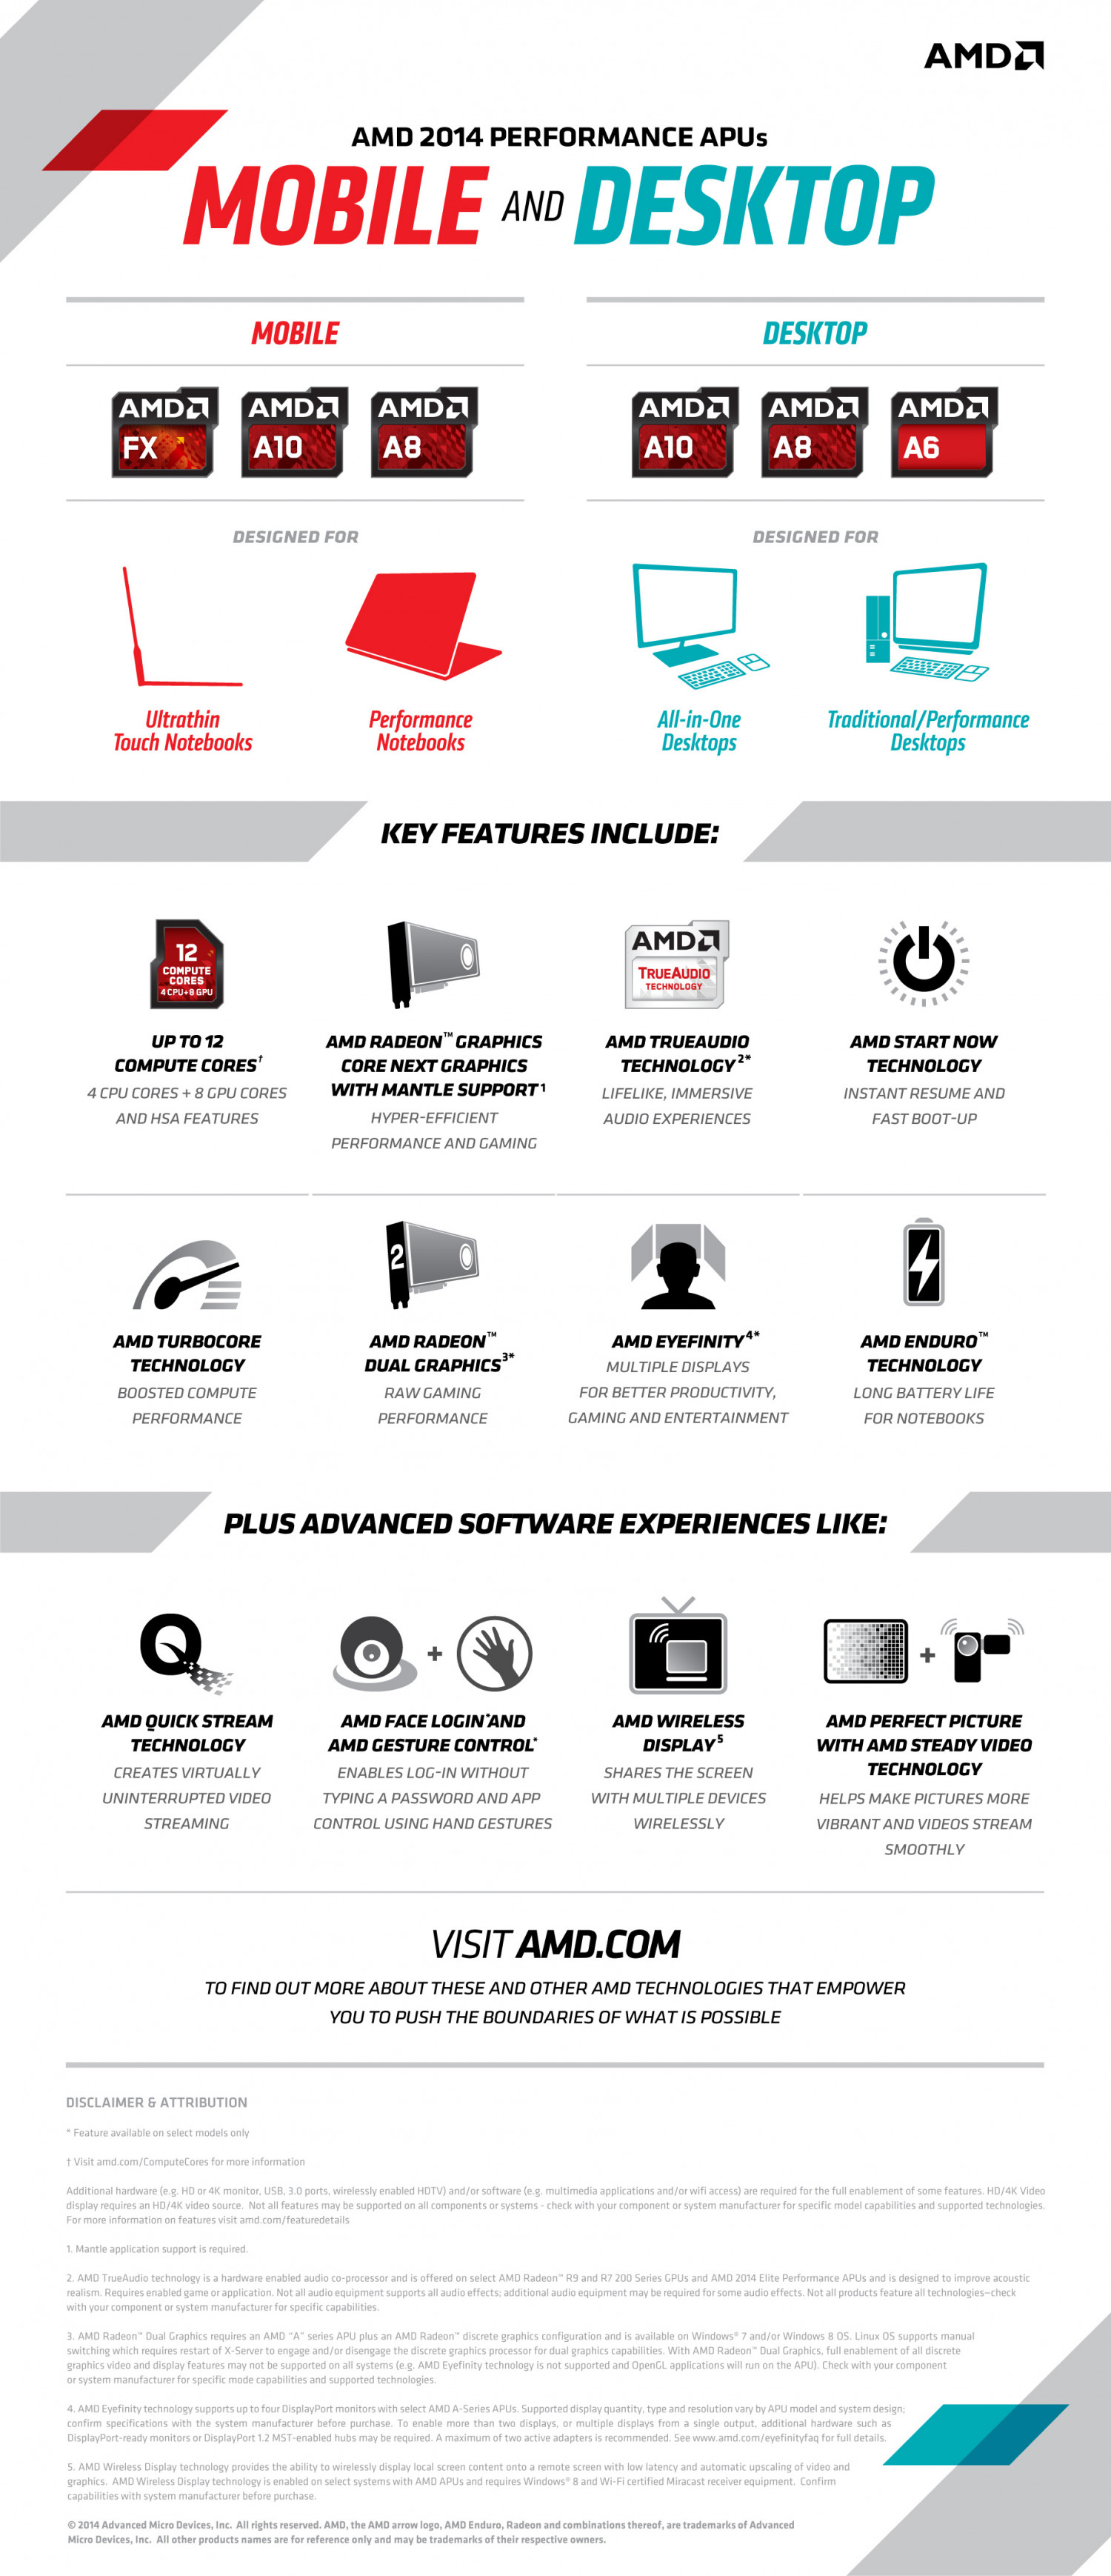 AMD 2014 Performance APUs Infographic